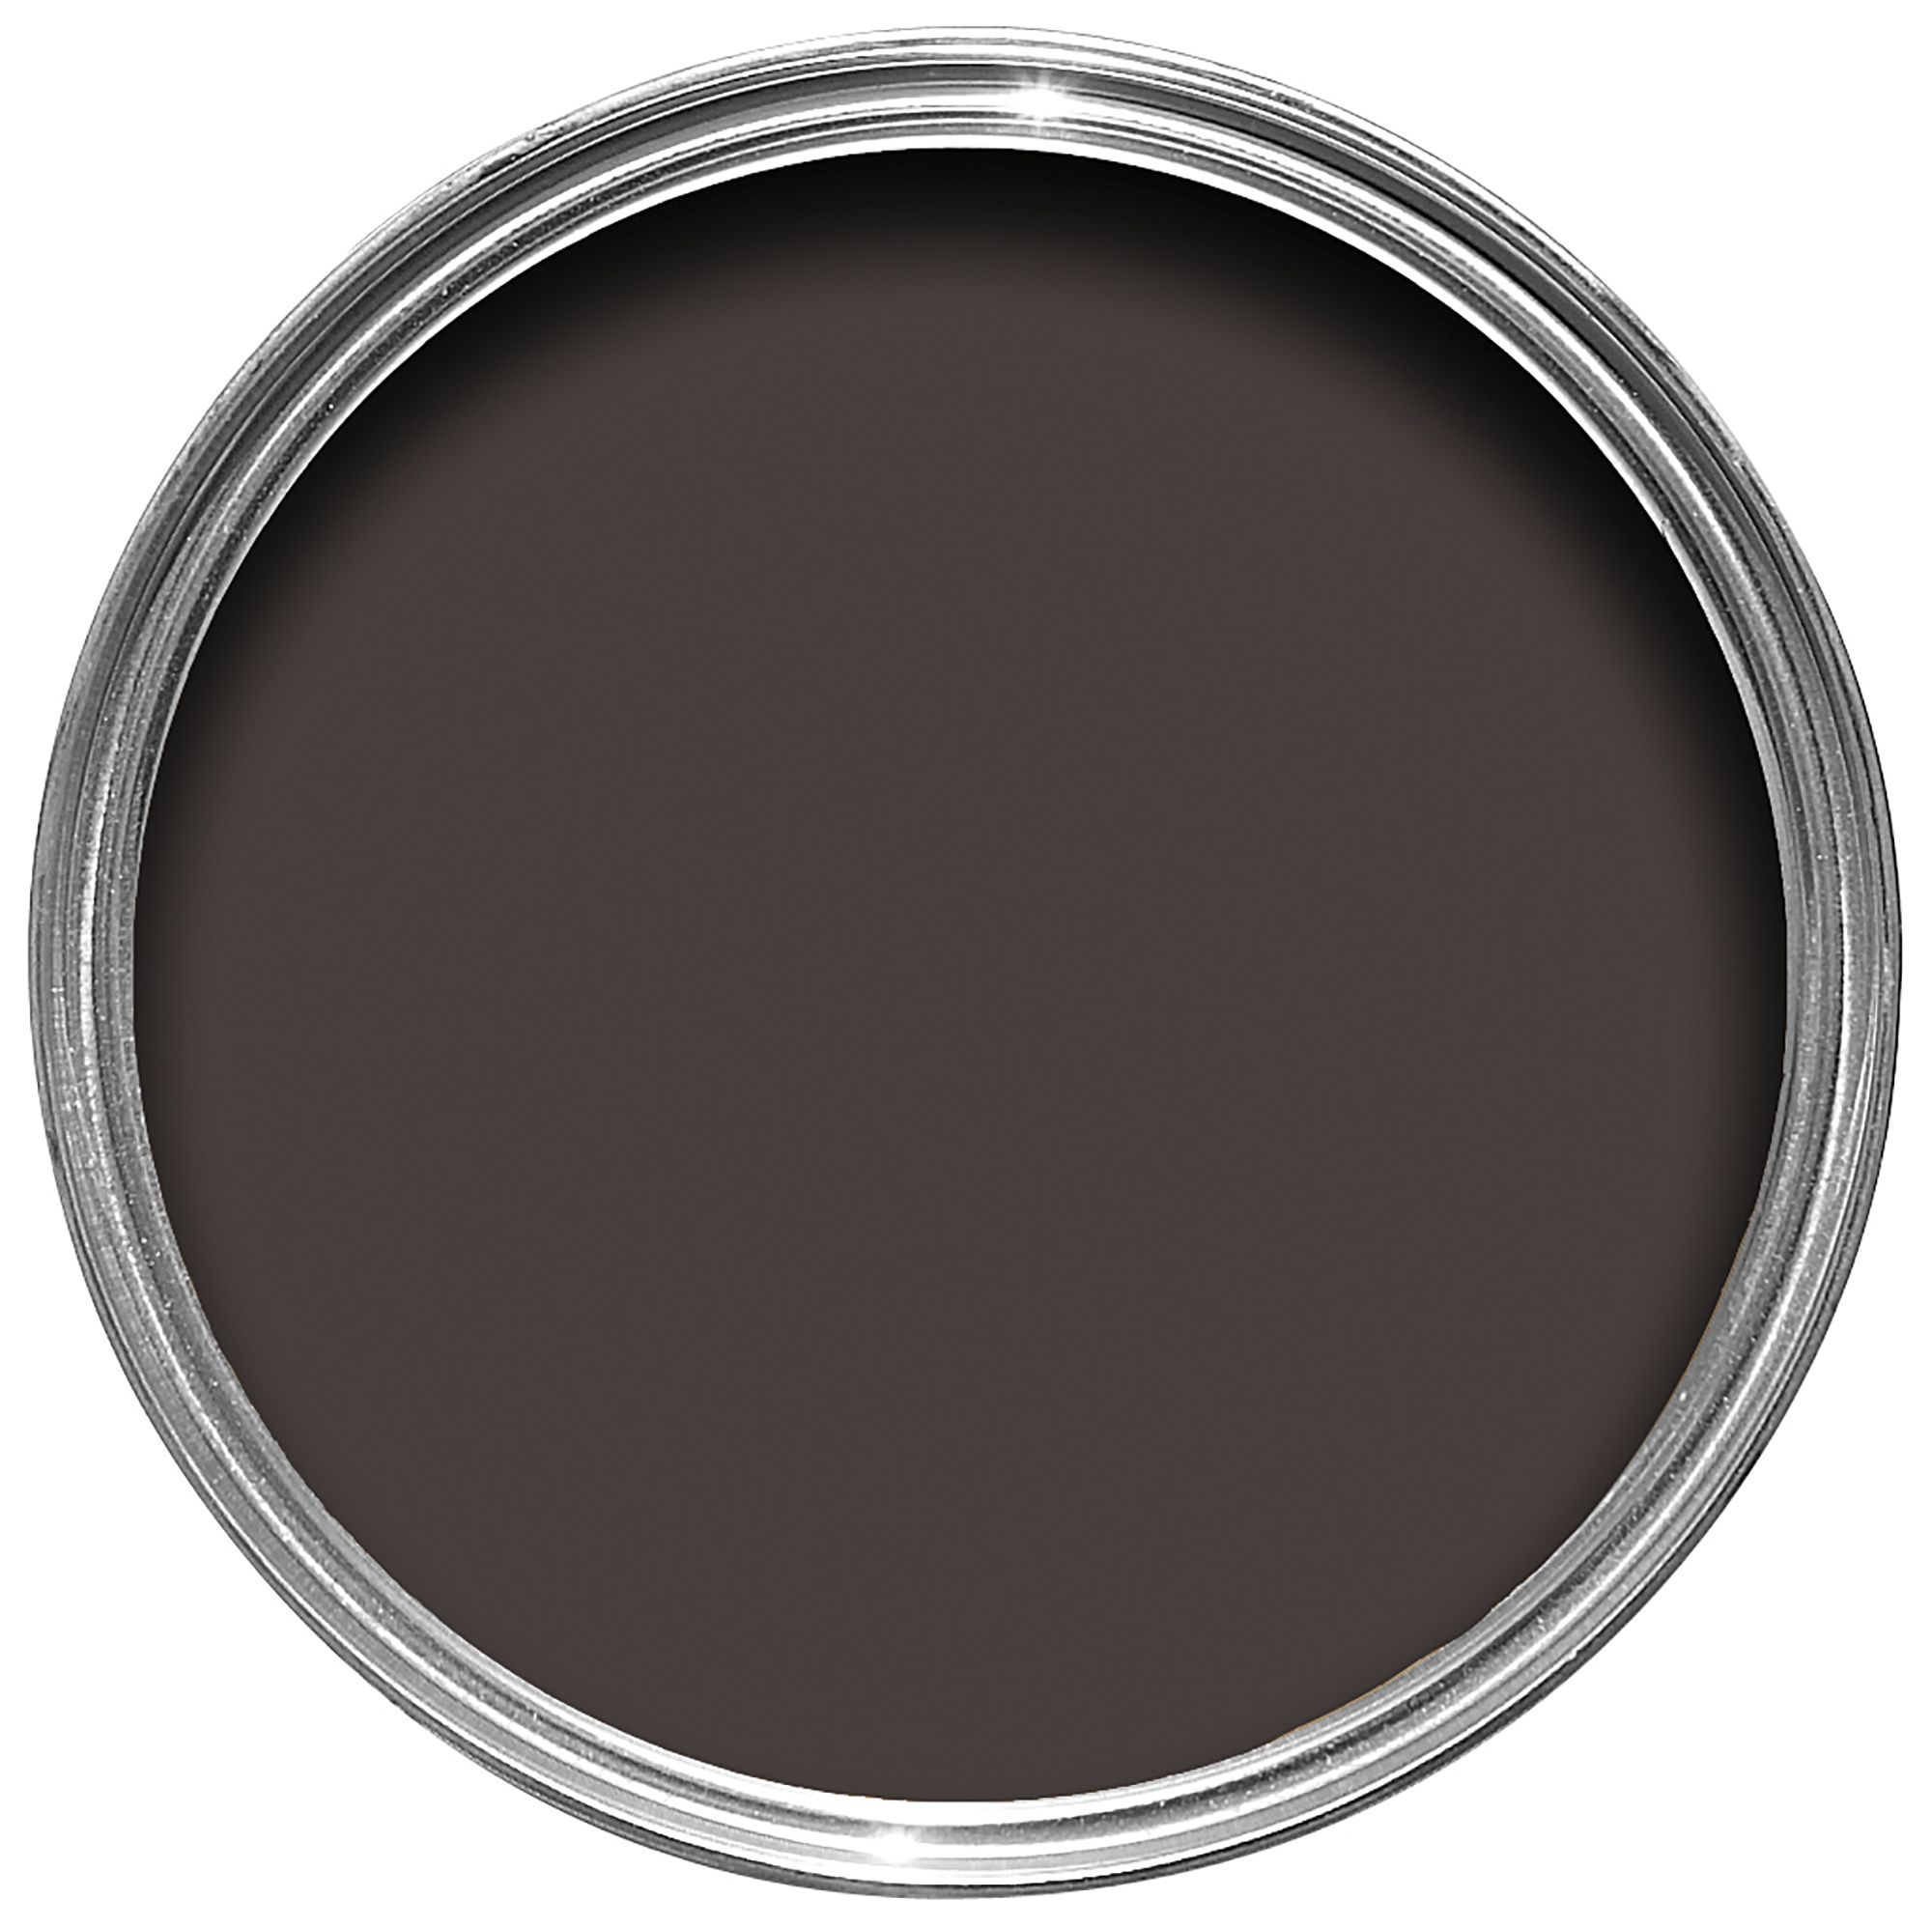 Colours Premium Dark Chocolate Silk Emulsion Paint 2 5l Departments Diy At B Q